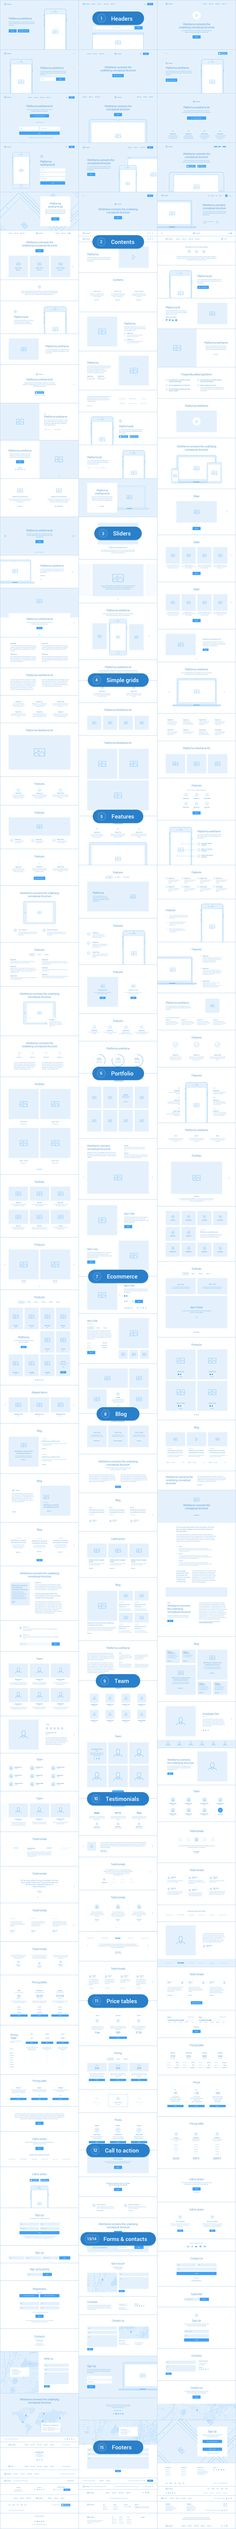 Platforma: Ultimate Wireframe Kit of 200+ Layouts for Sketch - Download theme here : http://themeforest.net/item/platforma-ultimate-wireframe-kit-of-200-layouts-for-sketch/15894124?ref=pxcr